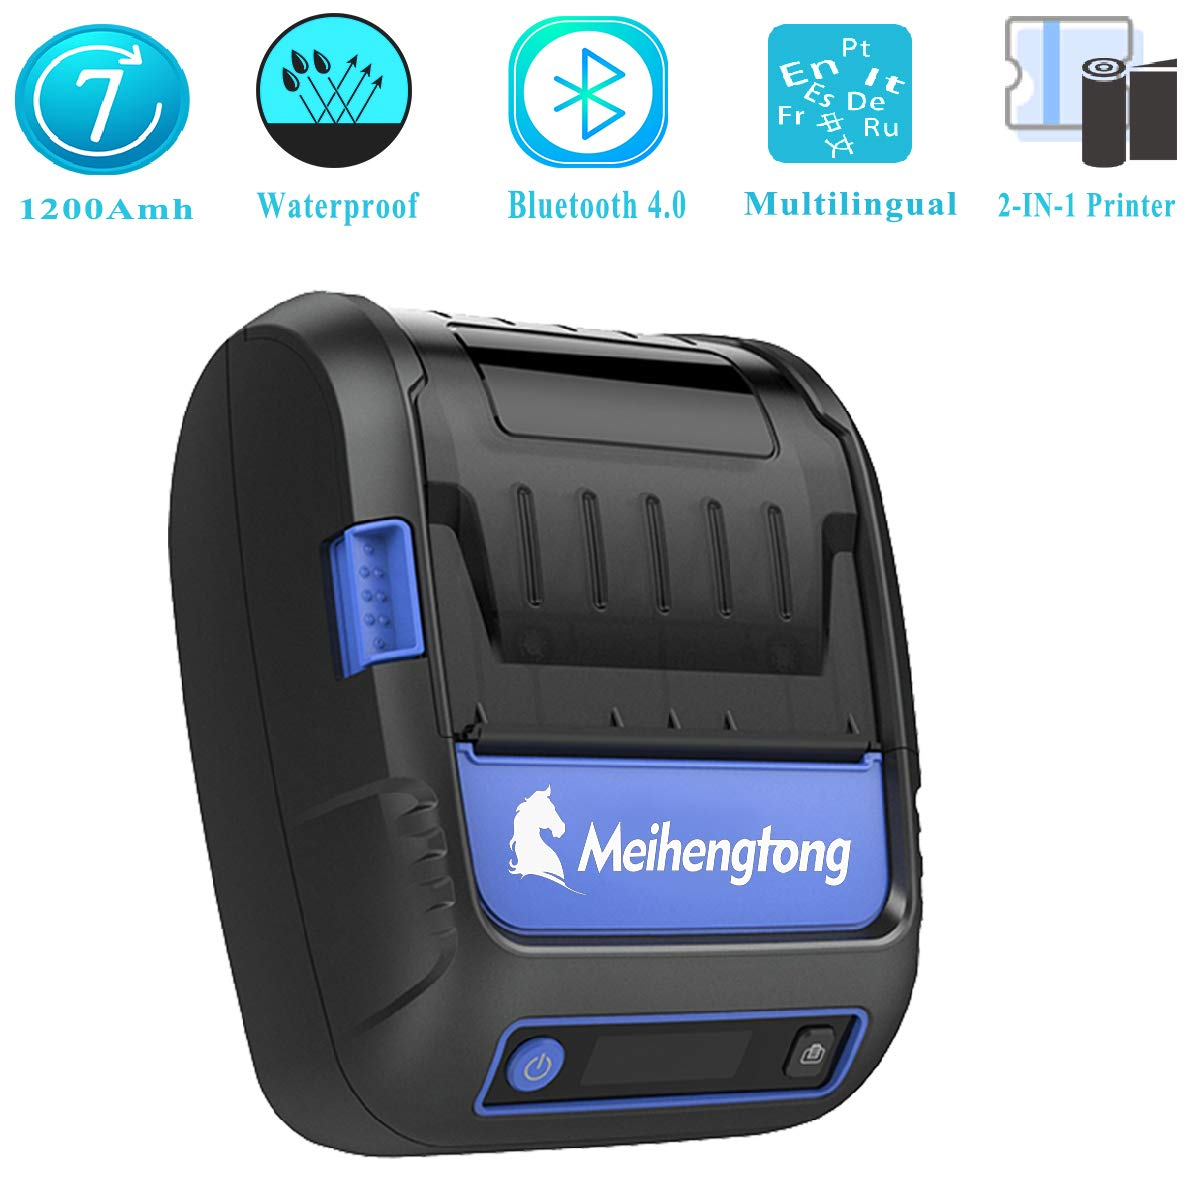 Mobile Thermal Label/Receipt Printer, Meihengtong Handheld 2 Inches 58mm Mini Portable Bluetooth 4.0 Label Printer Wireless with Rechargeable Battery, ...